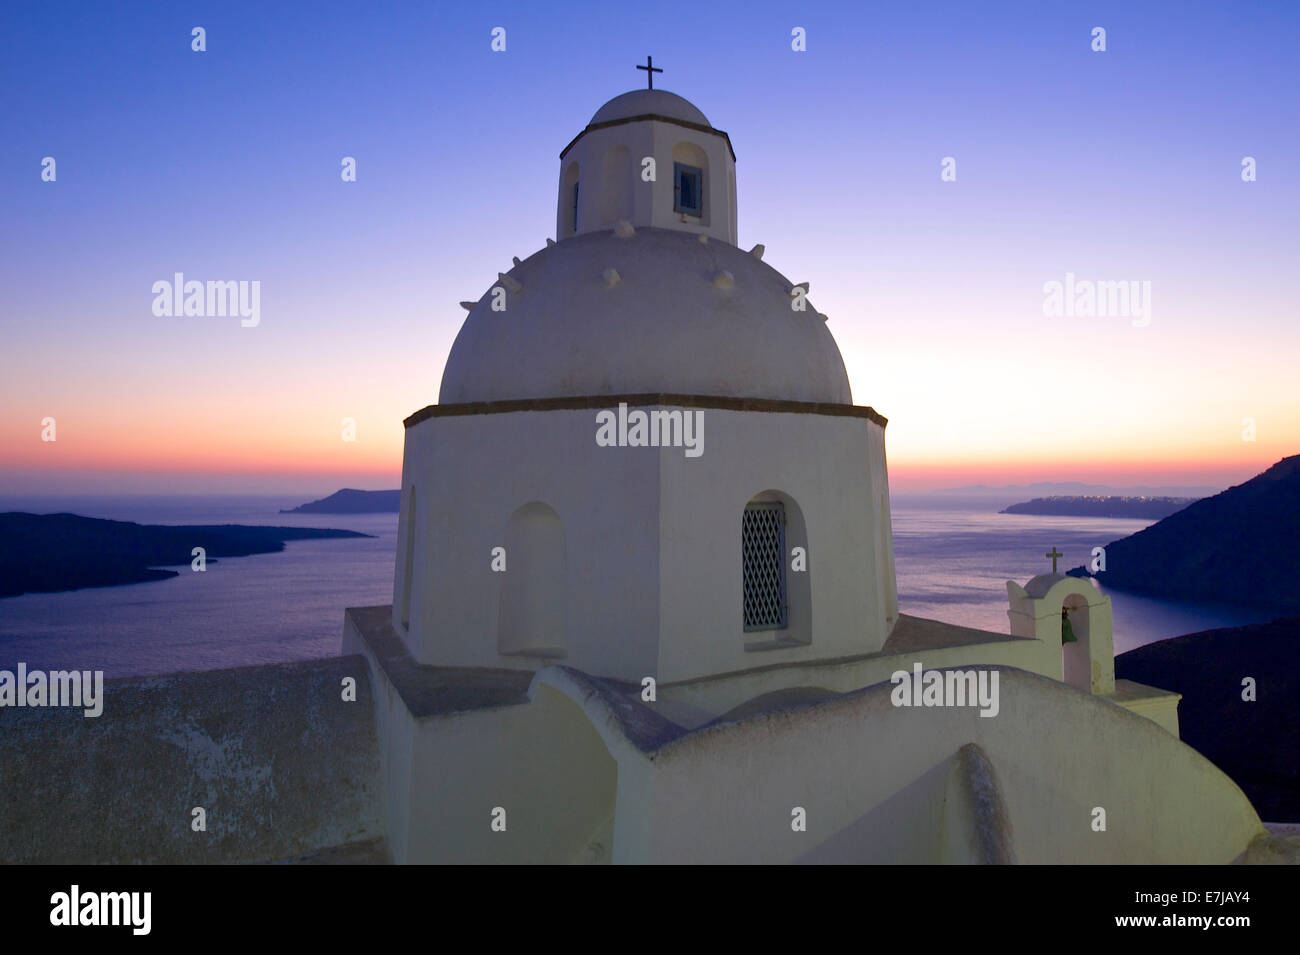 Agios Minas Church at sunset, Thira, Santorini, Cyclades, Greece - Stock Image